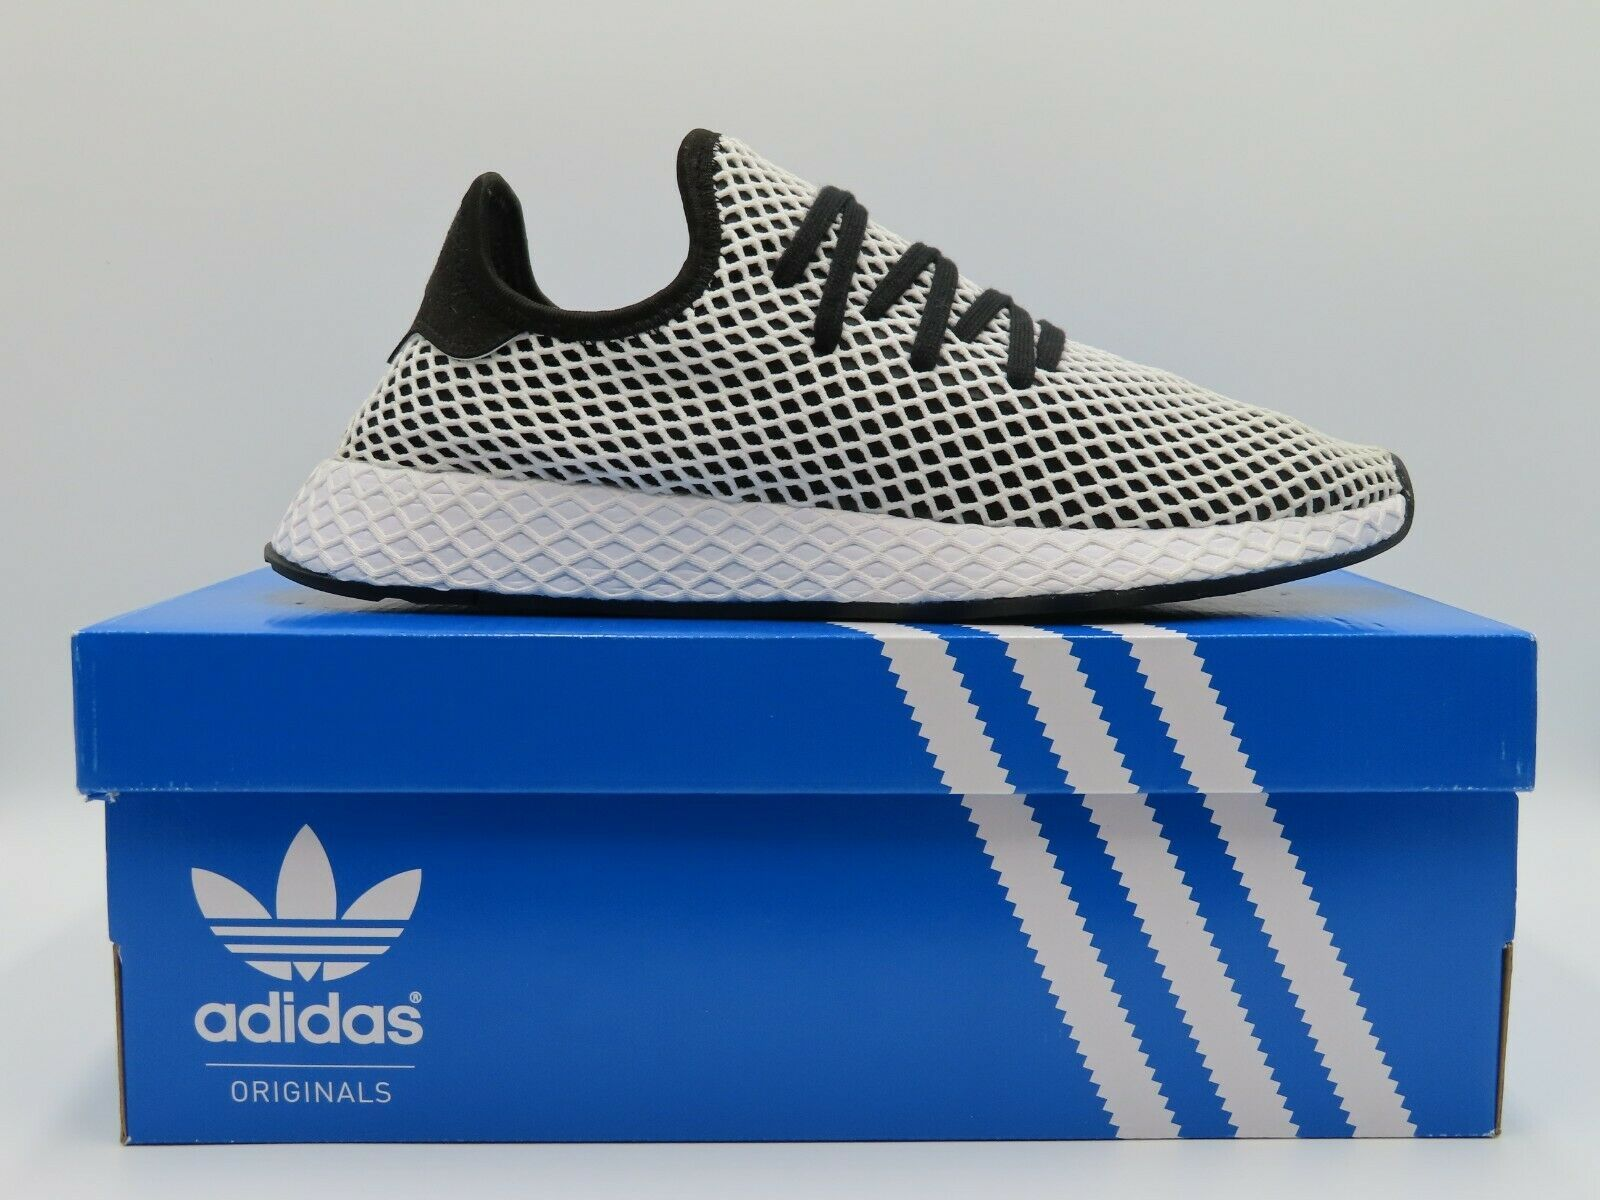 Adidas Deerupt Runner Black White Men Running Shoes Sneakers CQ2626